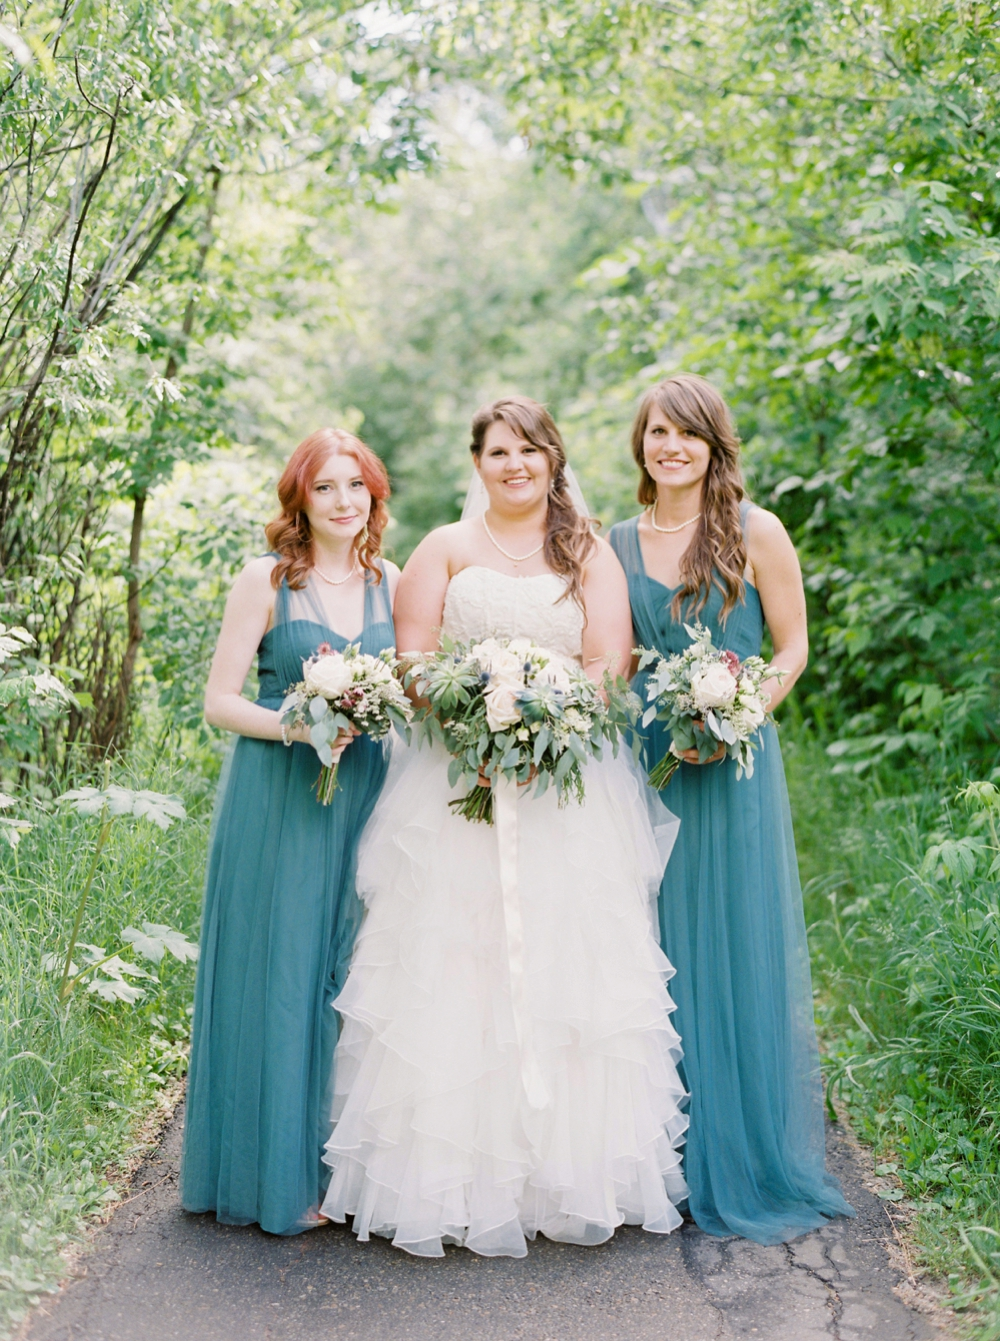 Edmonton & St.Albert Wedding Photographers | Justine Milton fine art film wedding photography | vintage teal bridesmaid dress Jenny Yoo